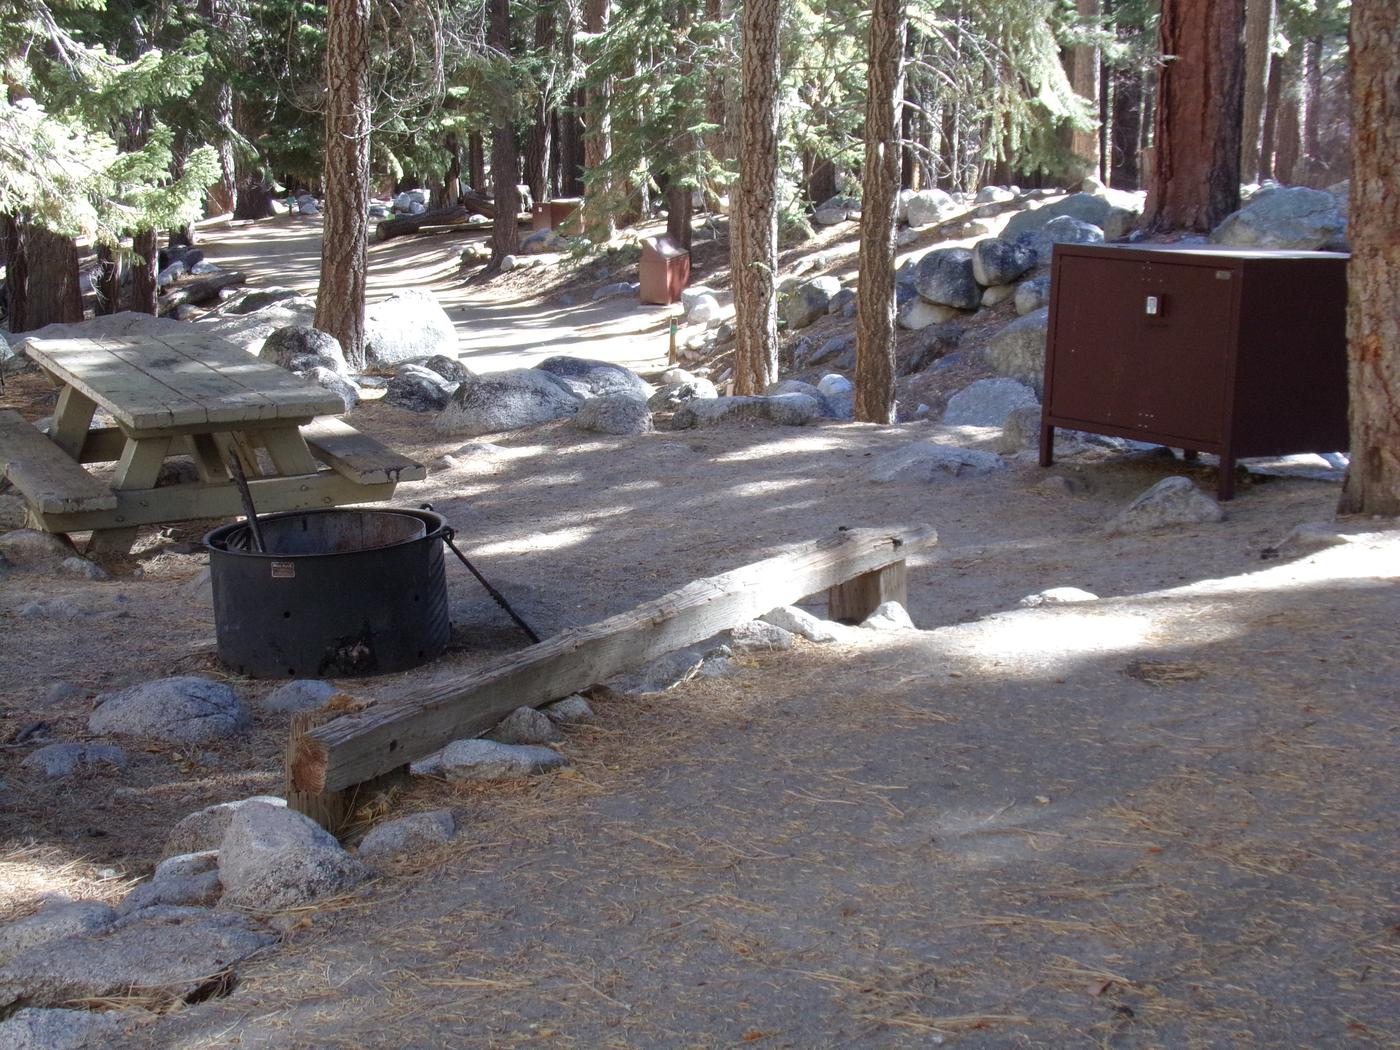 Mt. Whitney Portal Campground site #17 featuring mountain top setting with picnic area and camping space.